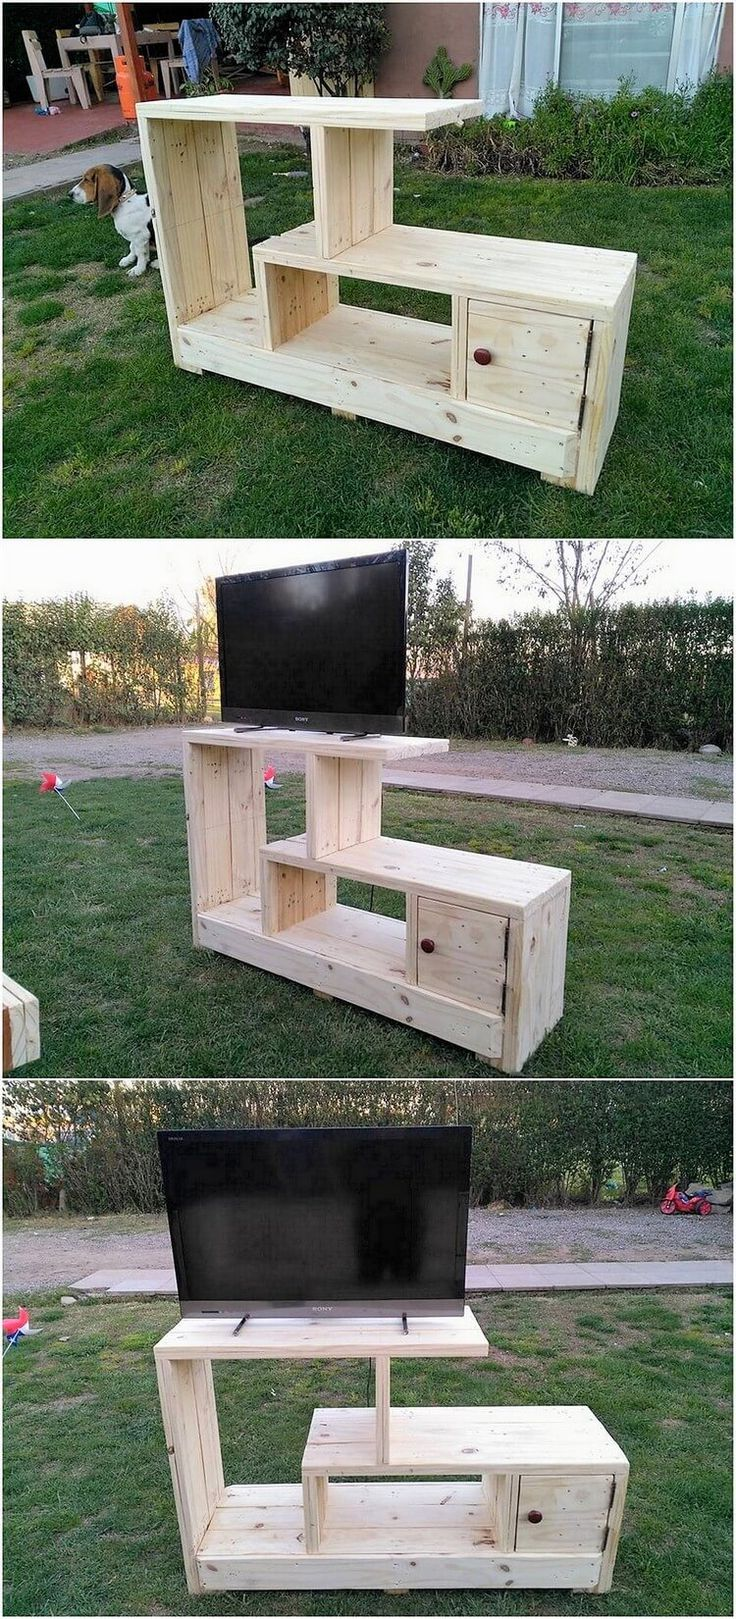 Give a look at this excellent creation of the media table TV stand furniture design where the superb use of the wood pallet is the main attraction of the whole creation project. This furniture design is added with the shelving variations that looks so classy on the whole artwork patterns.